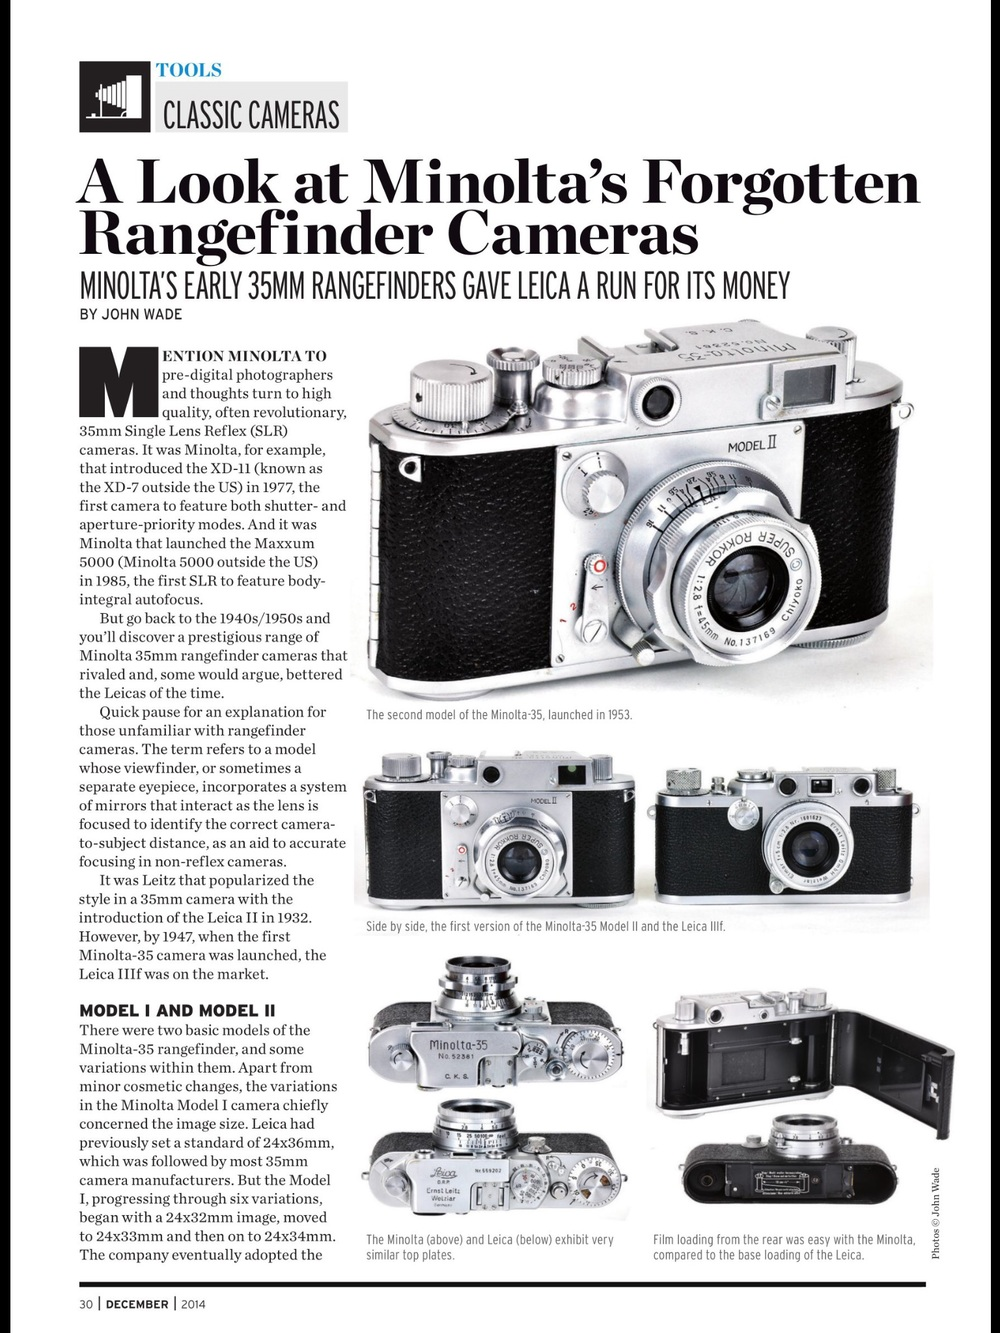 Shutterbug is one of several US photographic magazines that come free with your Readly subscription